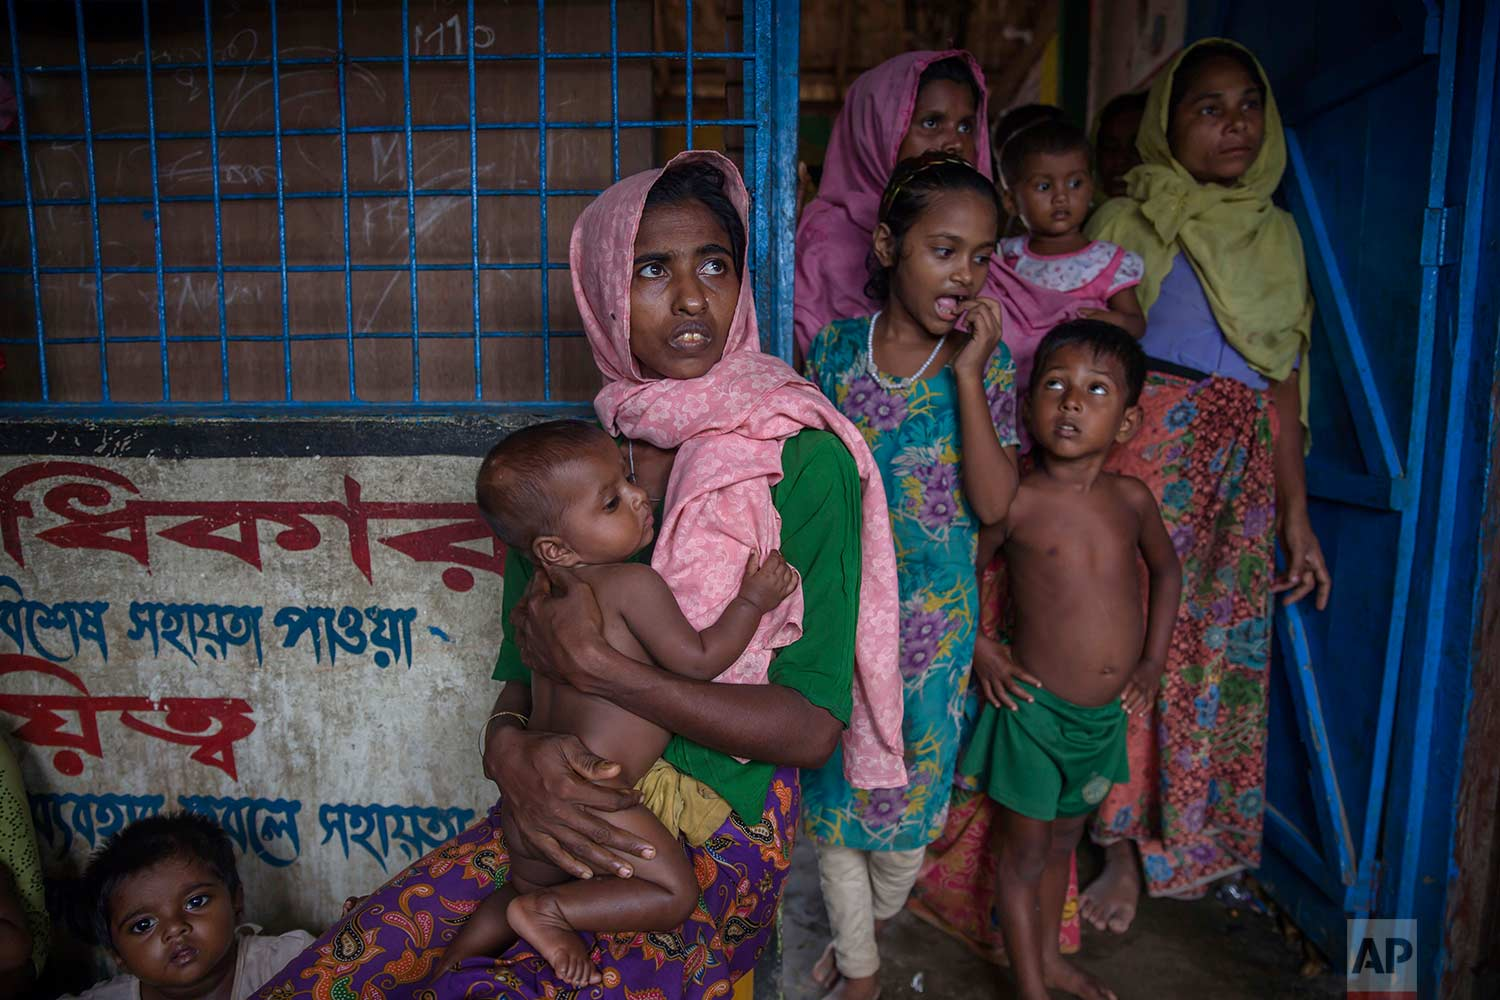 A Rohingya Muslim woman Nur Nahar, center, who crossed over from Myanmar into Bangladesh, holds her son Mohammad Junaid, as she sits in a dormitory of a school for her family to be registered as refugees after which they will be allowed to proceed to build a shelter in Kutupalong refugee camp, Bangladesh, Friday, Oct. 20, 2017. (AP Photo/Dar Yasin)